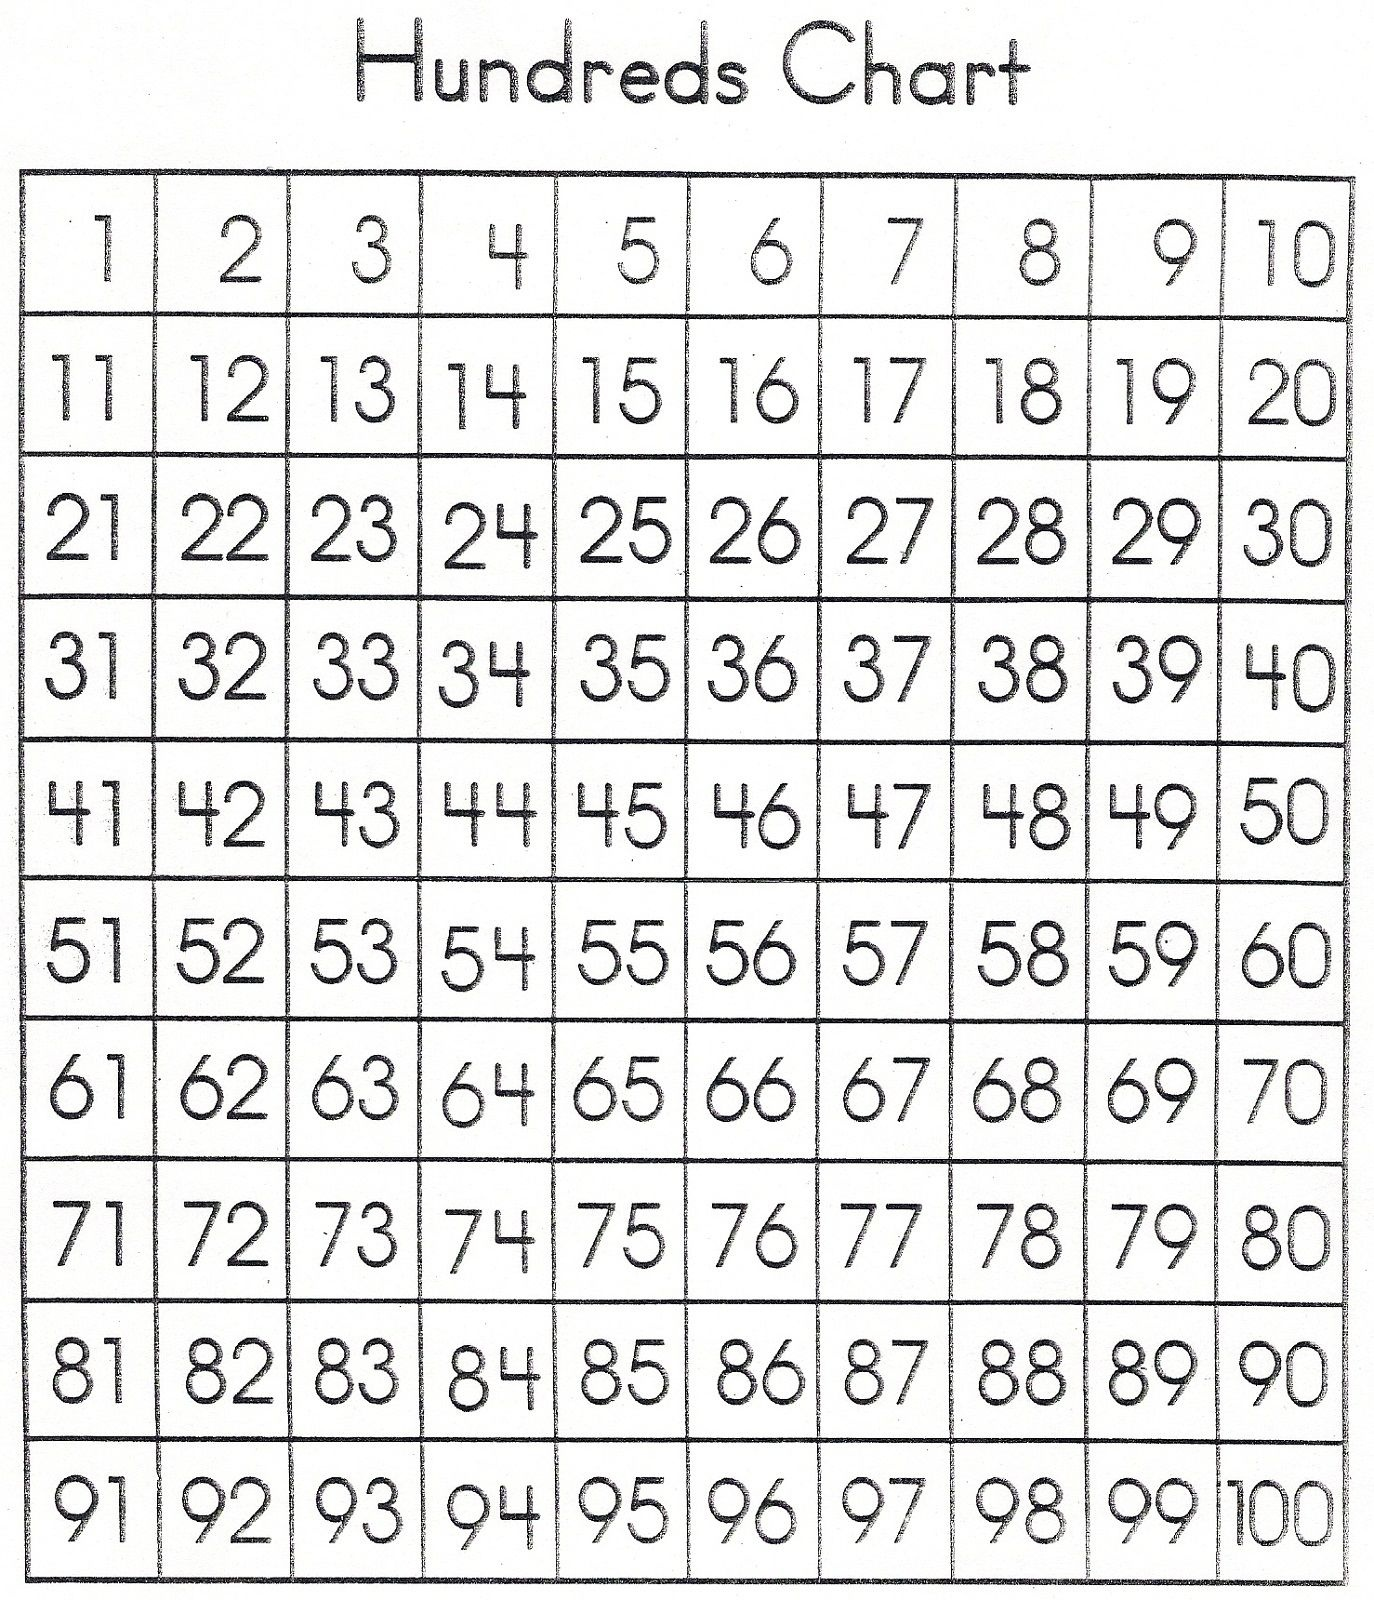 Number Sheet 1-100 To Print | Math Worksheets For Kids | 100 Number - Free Printable Number Chart 1 20